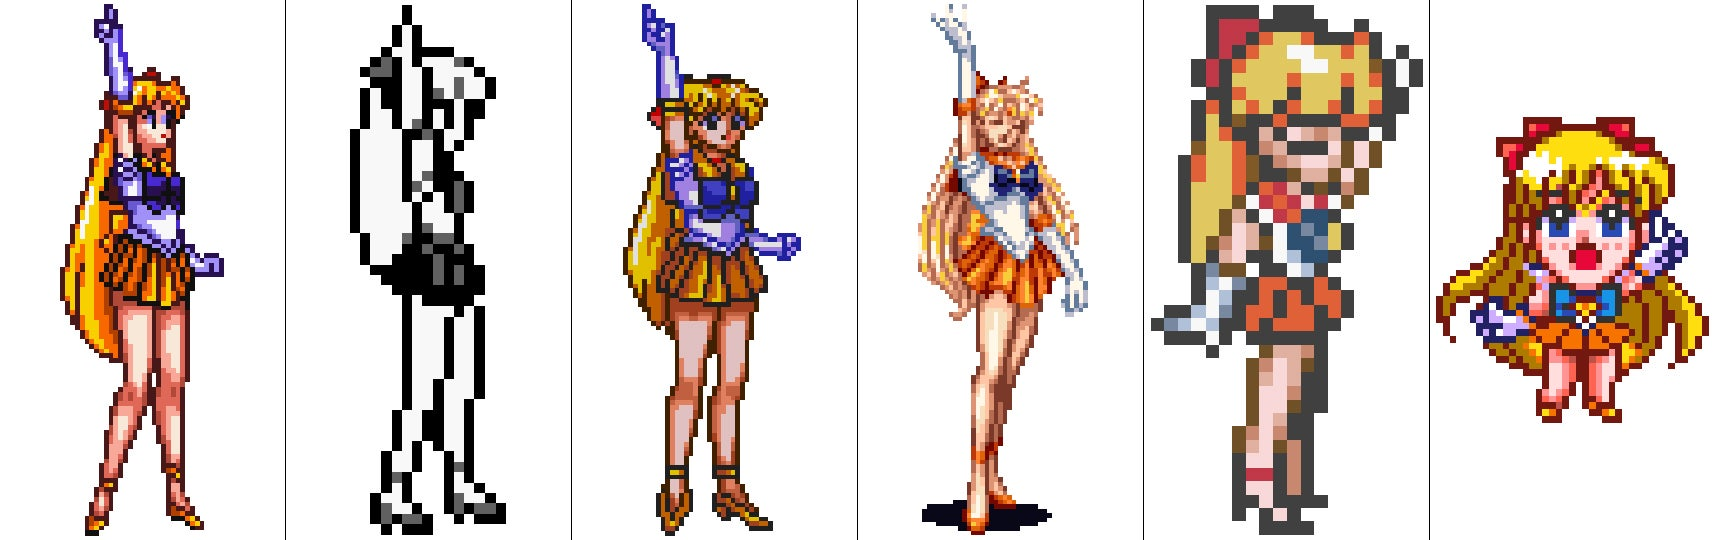 The Sailor Scouts Don't Look Half Bad as Retro Game Sprites